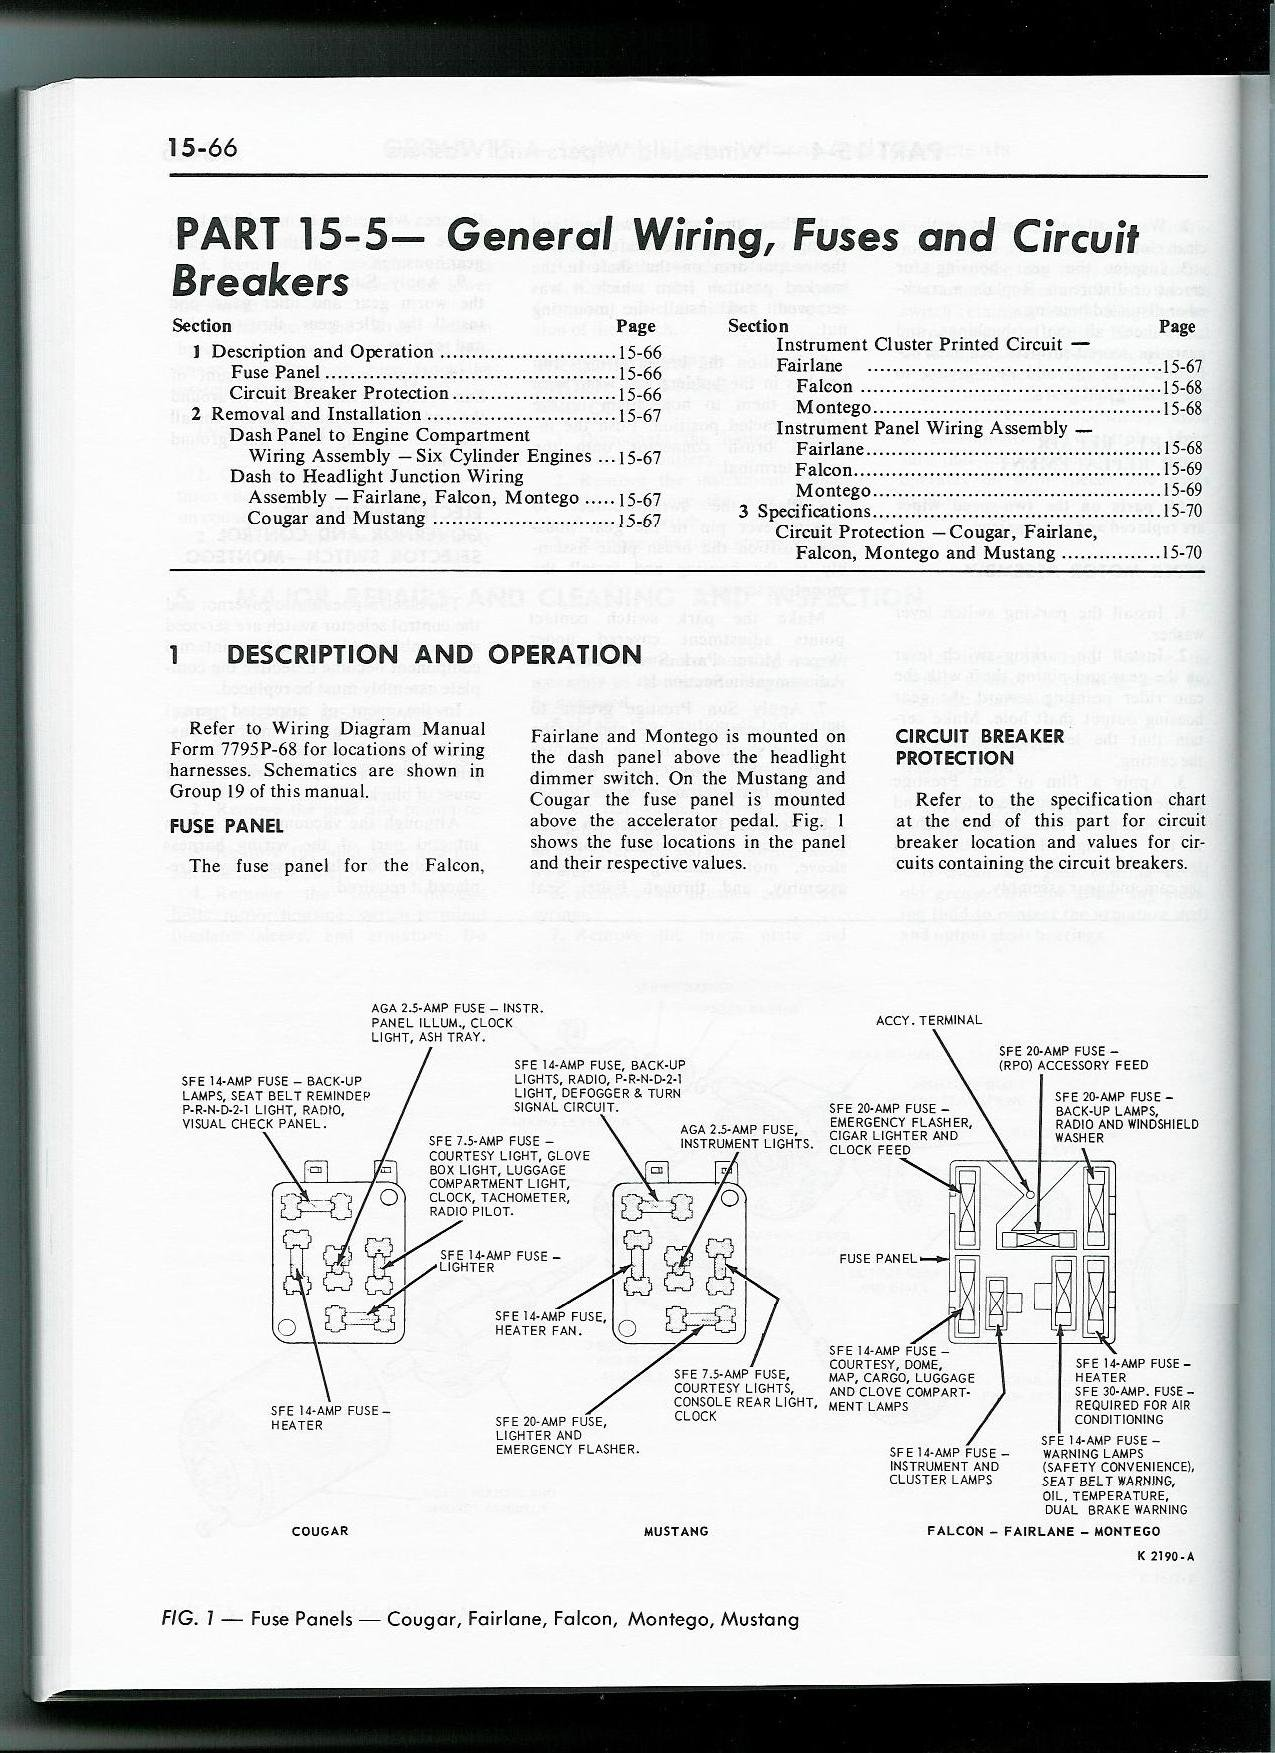 hight resolution of 66 mustang fuse diagram wiring diagram 1966 mustang fuse box wiring diagram 1966 mustang fuse box